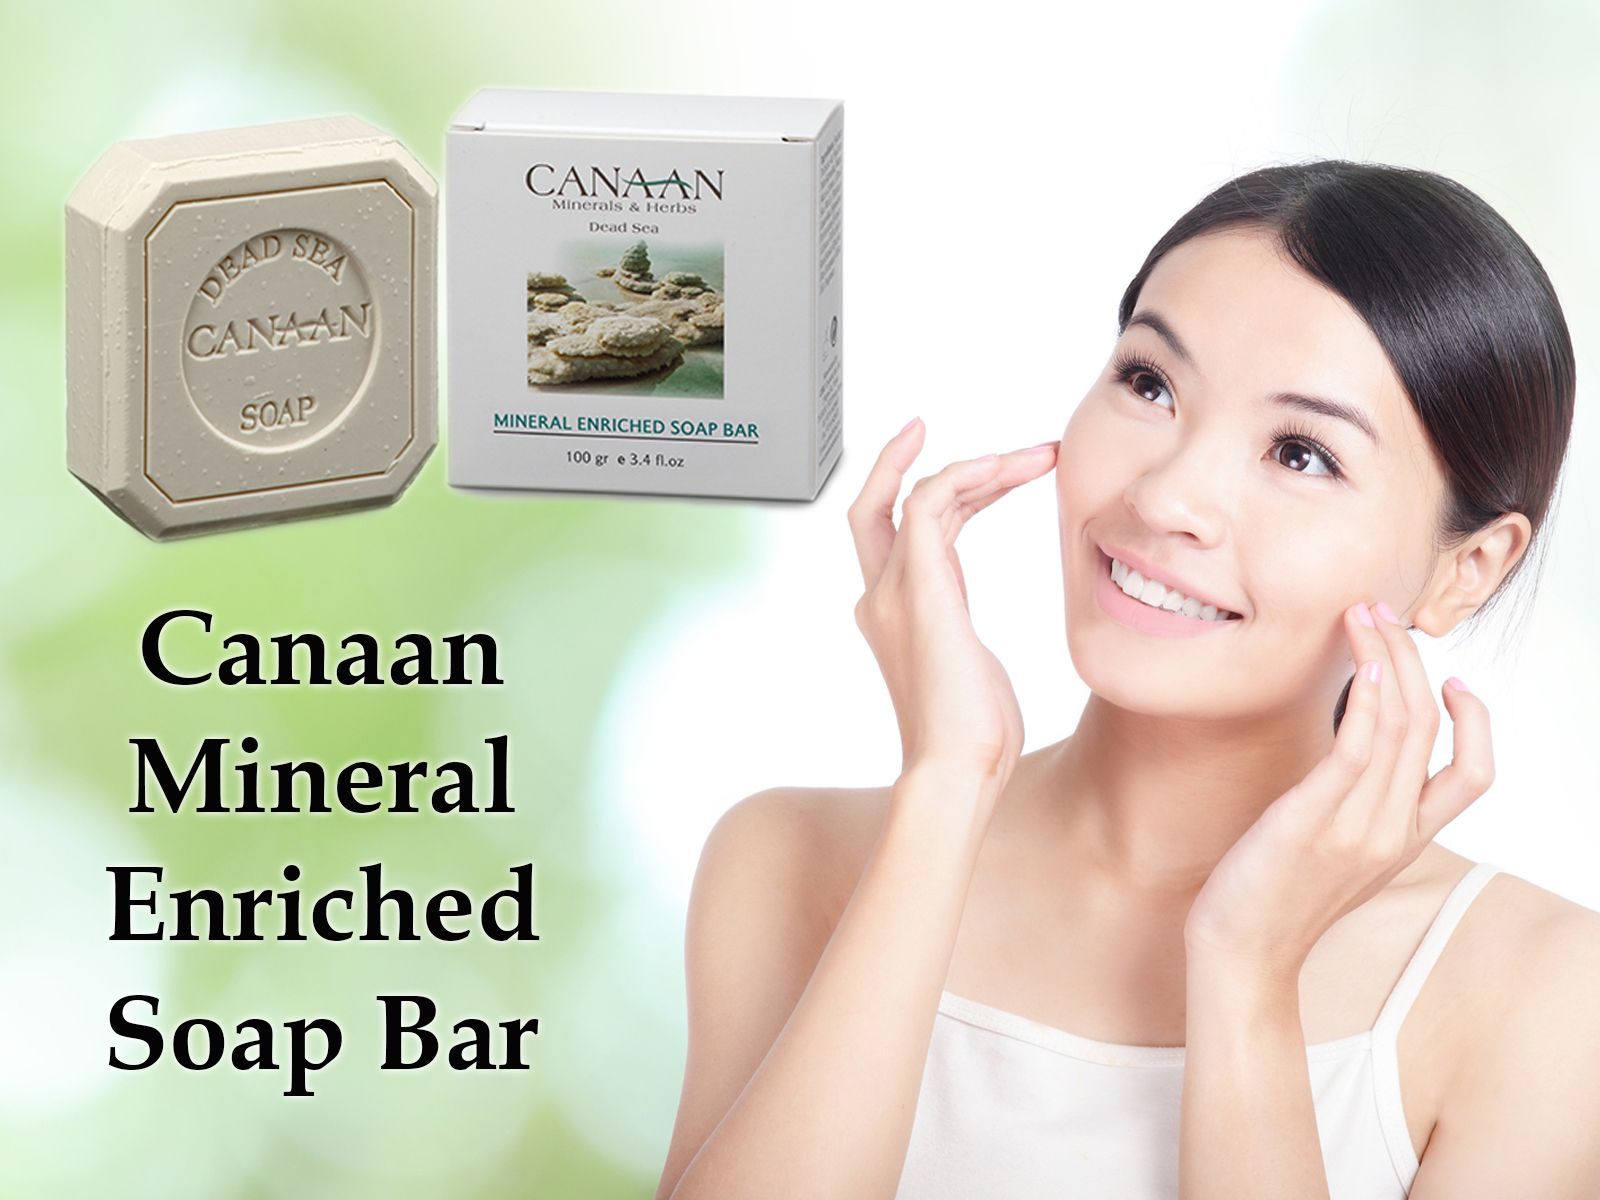 Canaan Mineral Enriched Soap Bar Makes Your Face And Body Firmed. Buy Our Cosmetic Products & Win FREE Customer Club Card! For More Information Visit Us At www.cosmeticsmall.com.ph Or Click Here (http://tinyurl.com/o8qvd56) And Leave Your Details. We Will Call You Back! #theholylandmall #free #customerclubcard #members #holylandmallbenefits #newproduct #holylandmallcosmetics #canaan #mineral #enriched #soapbar #cosmetics #holyland #israel